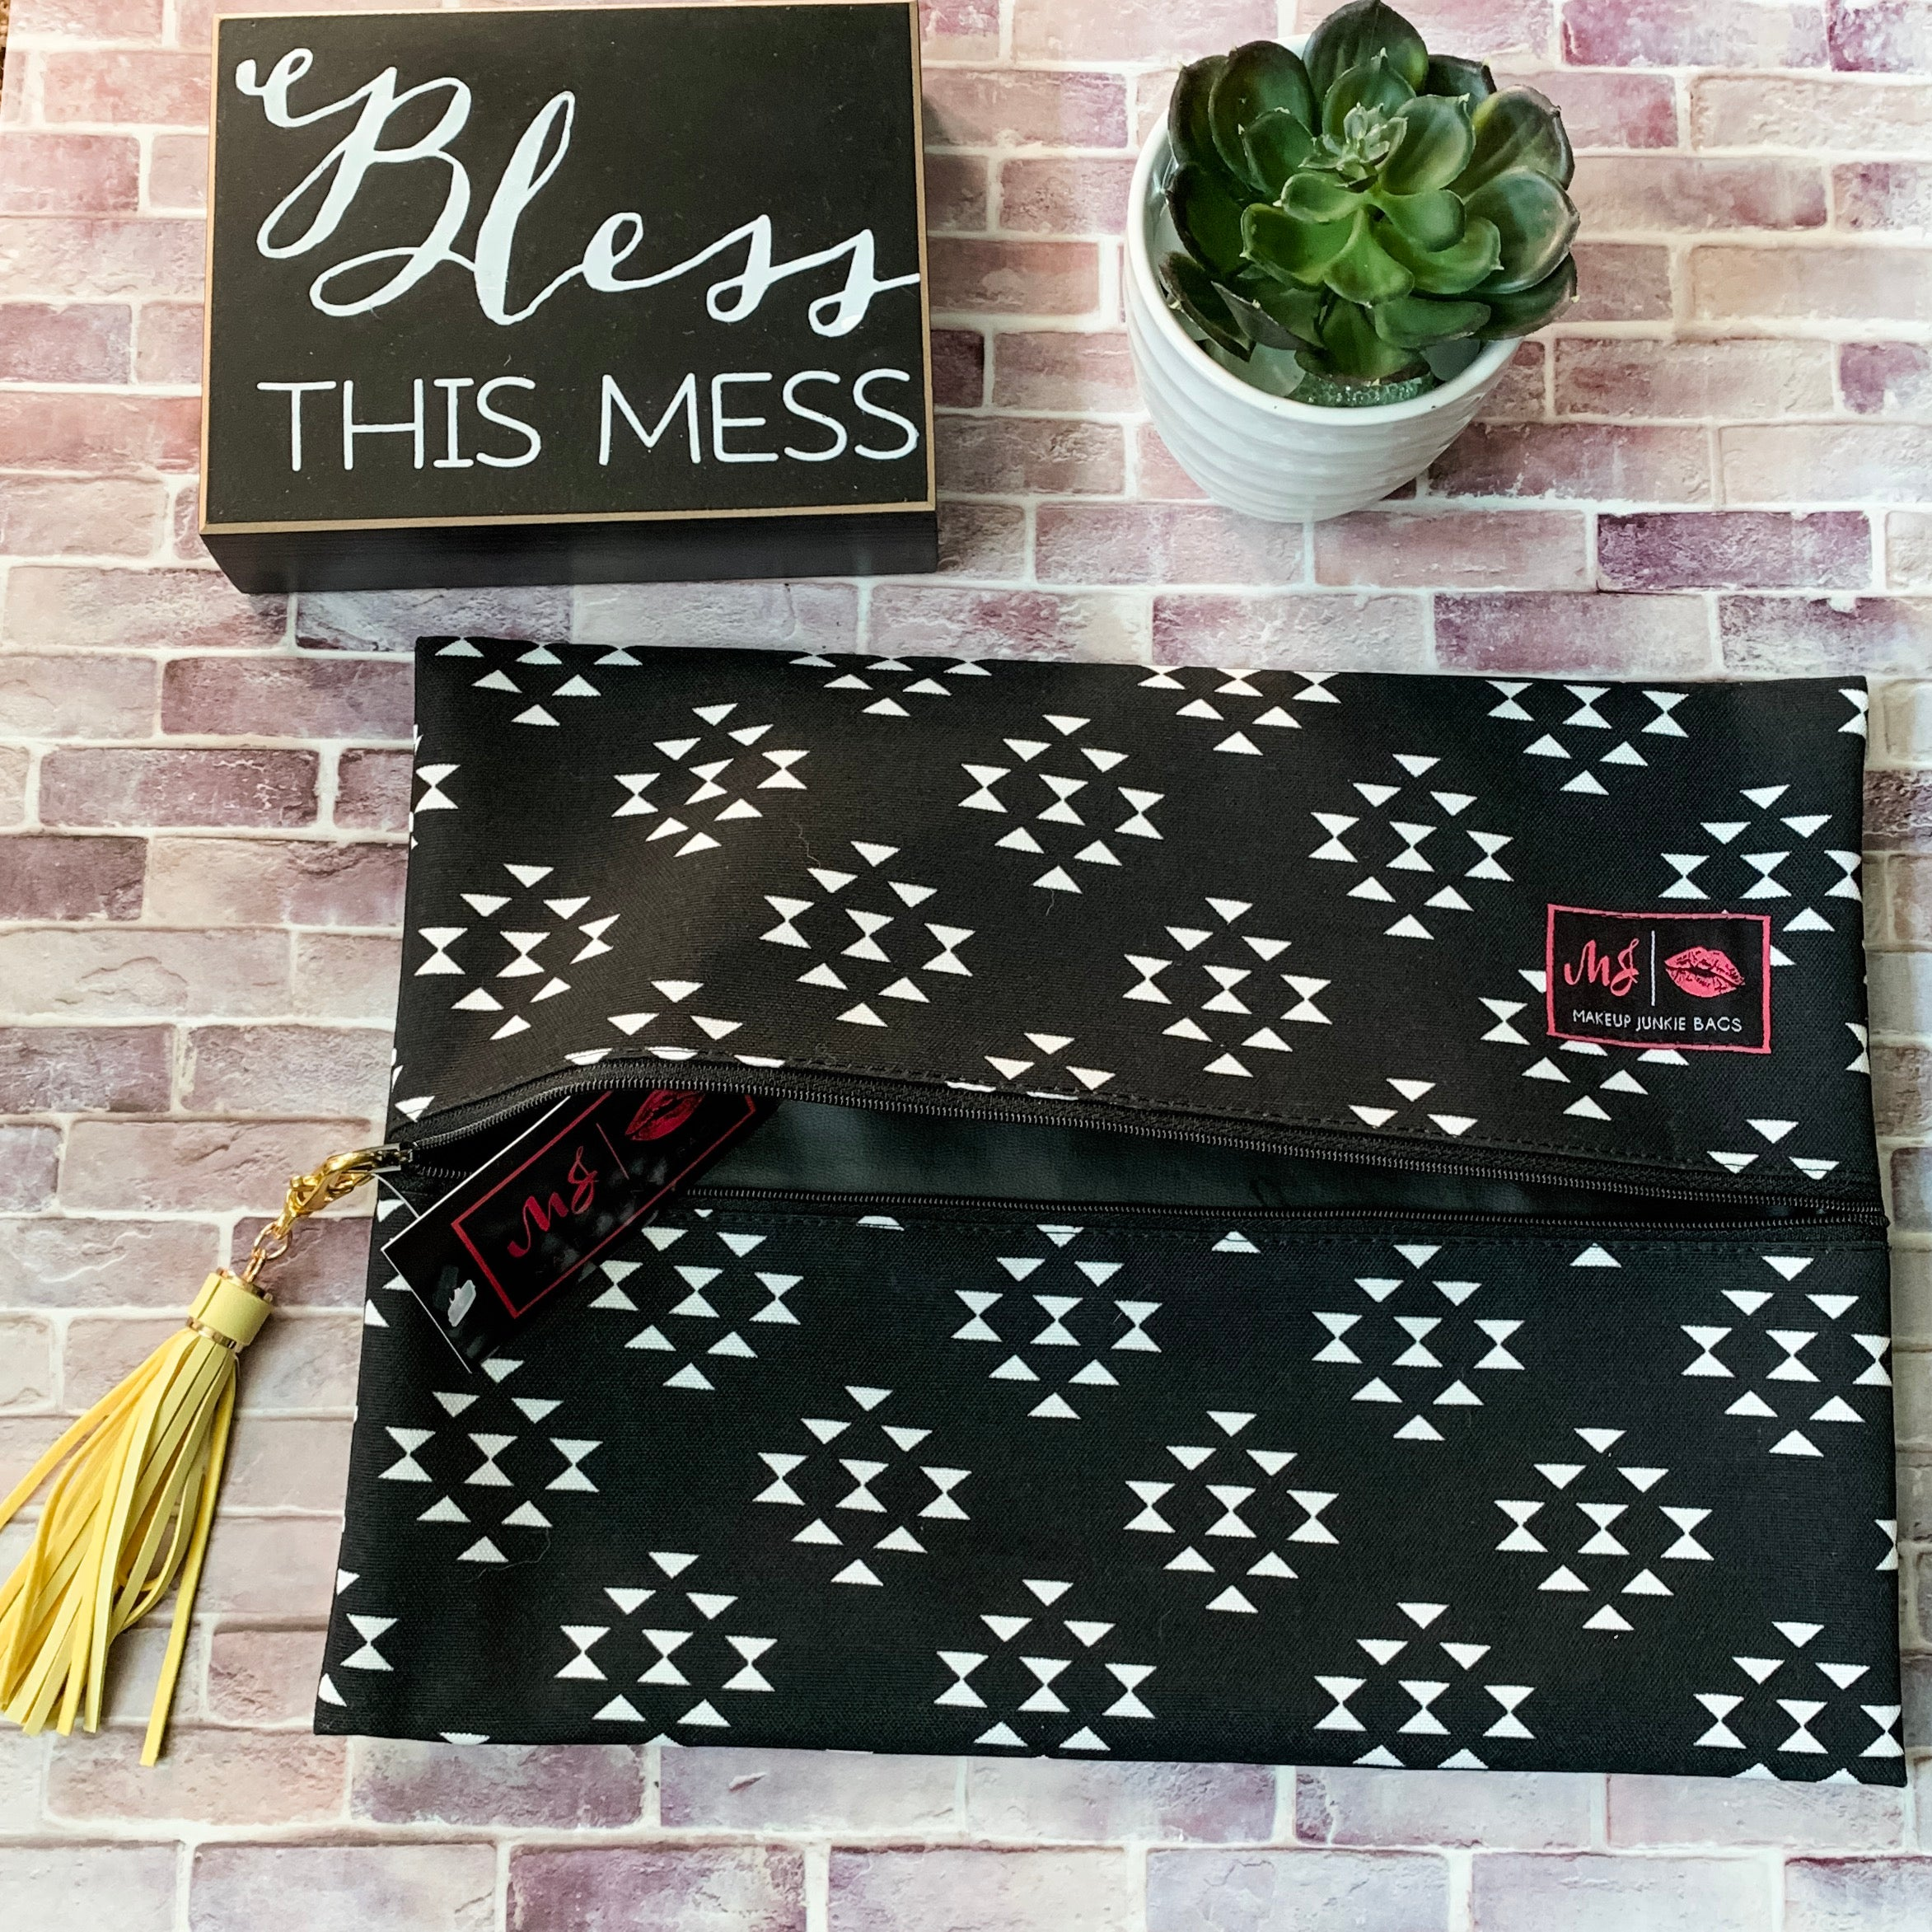 Makeup Junkie Bermuda Bag-Two Sweet Berries